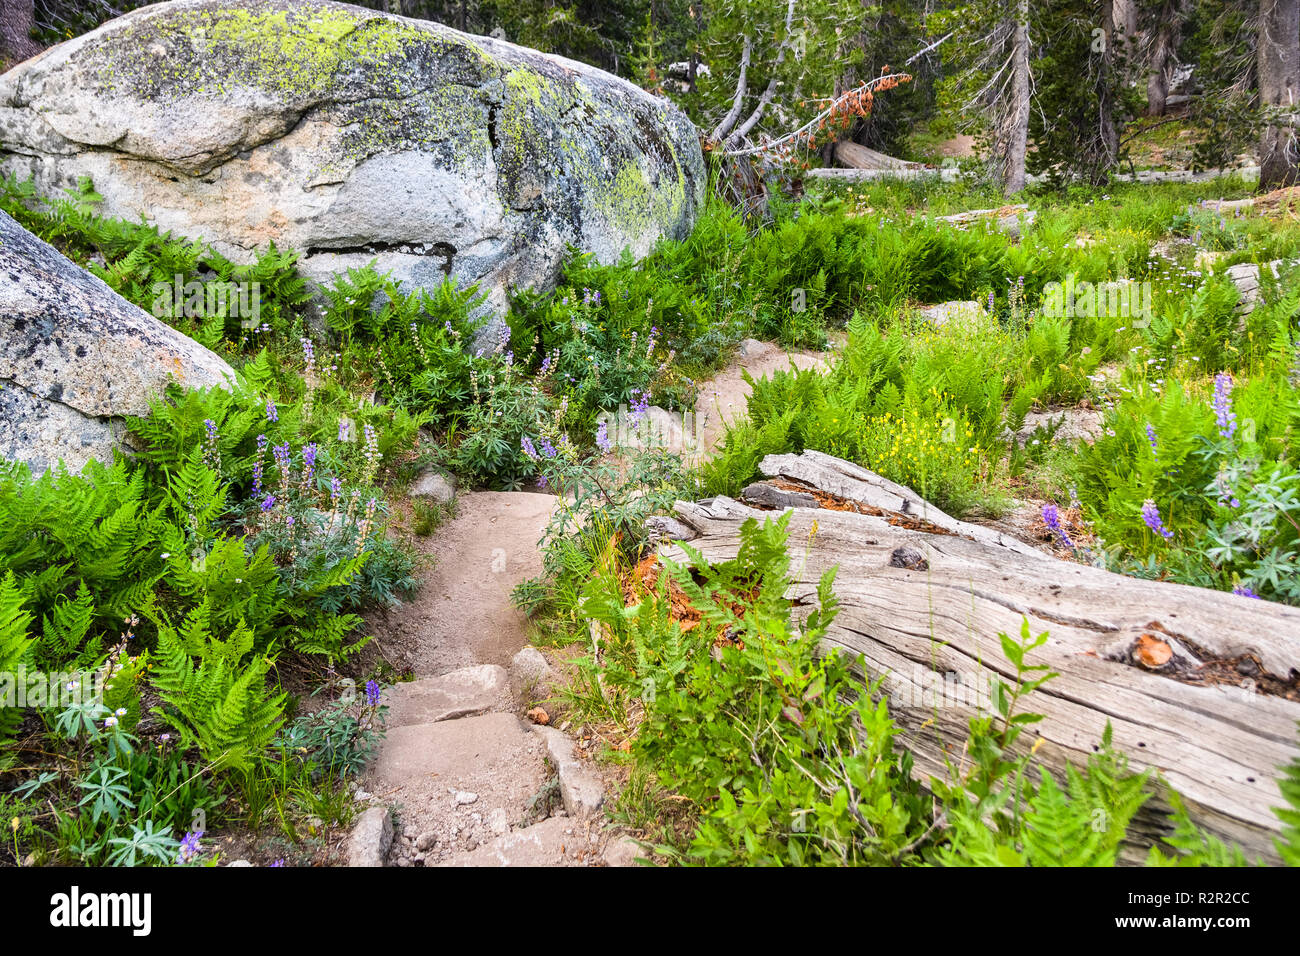 Beautiful hiking trail lined up with green ferns and silver lupine wildflowers, Yosemite National Park, Sierra Nevada mountains, California Stock Photo